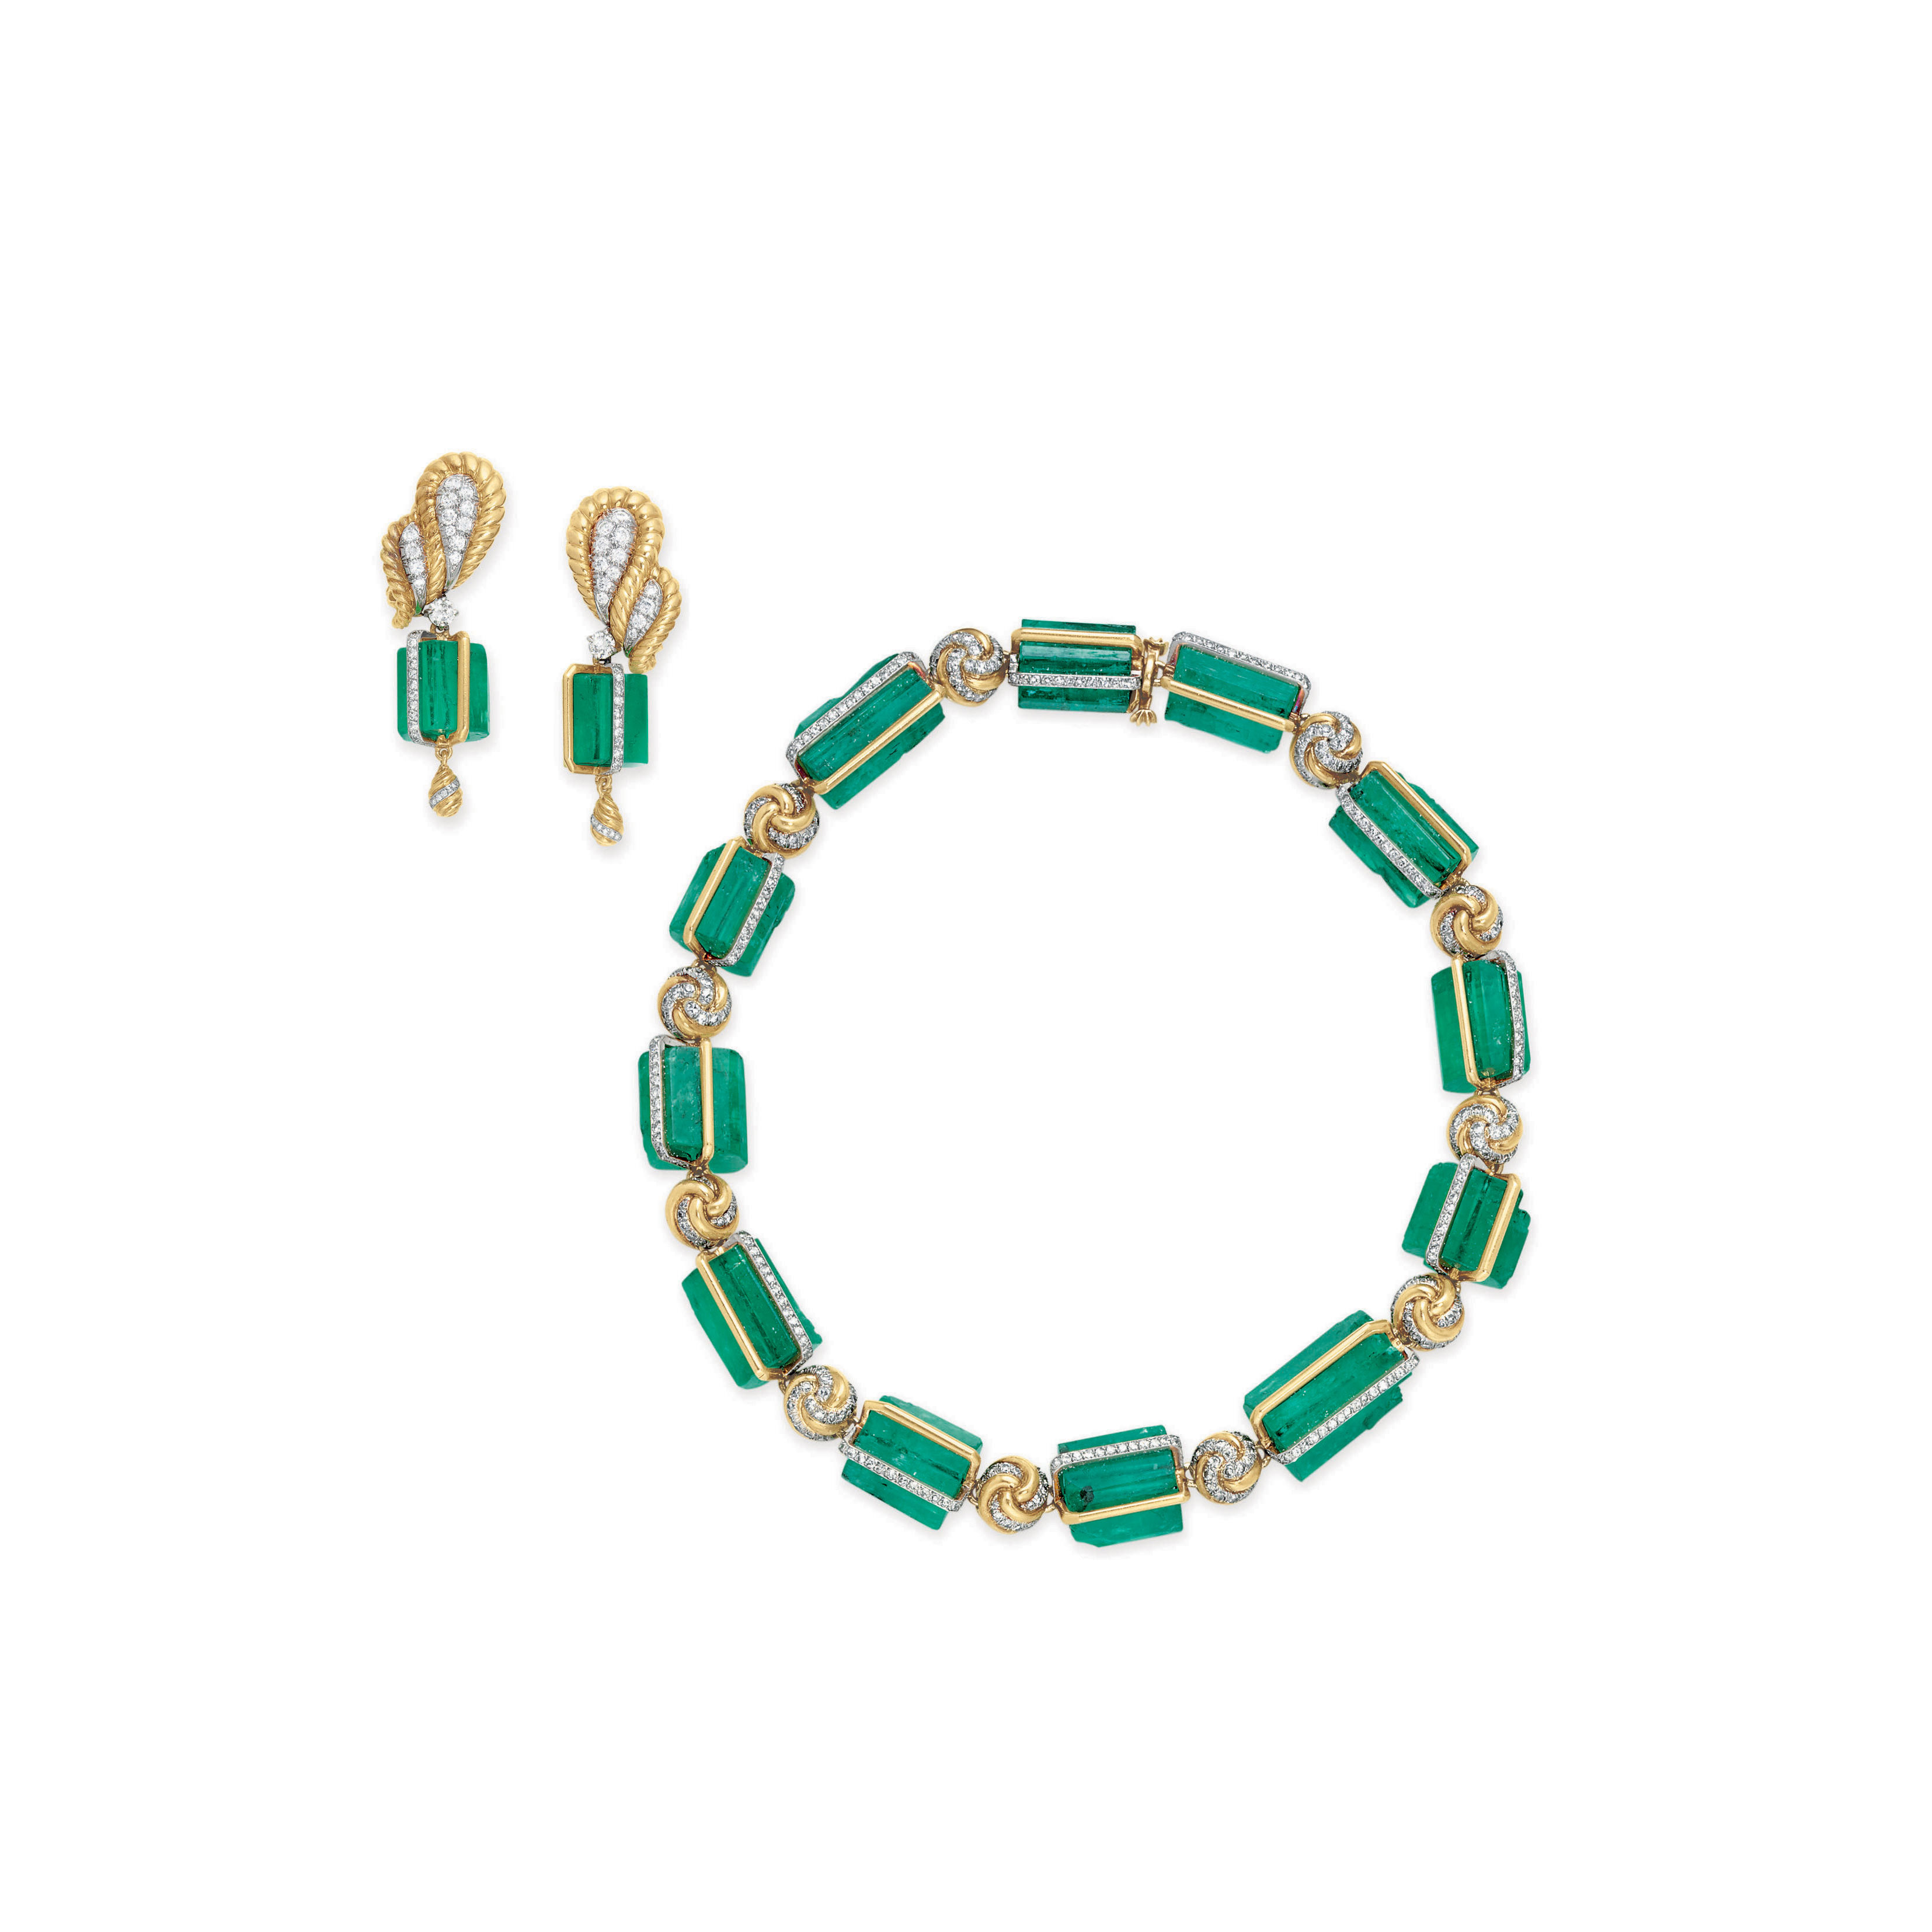 A STRIKING SUITE OF EMERALD BEAD, DIAMOND AND GOLD JEWELRY, BY VERDURA